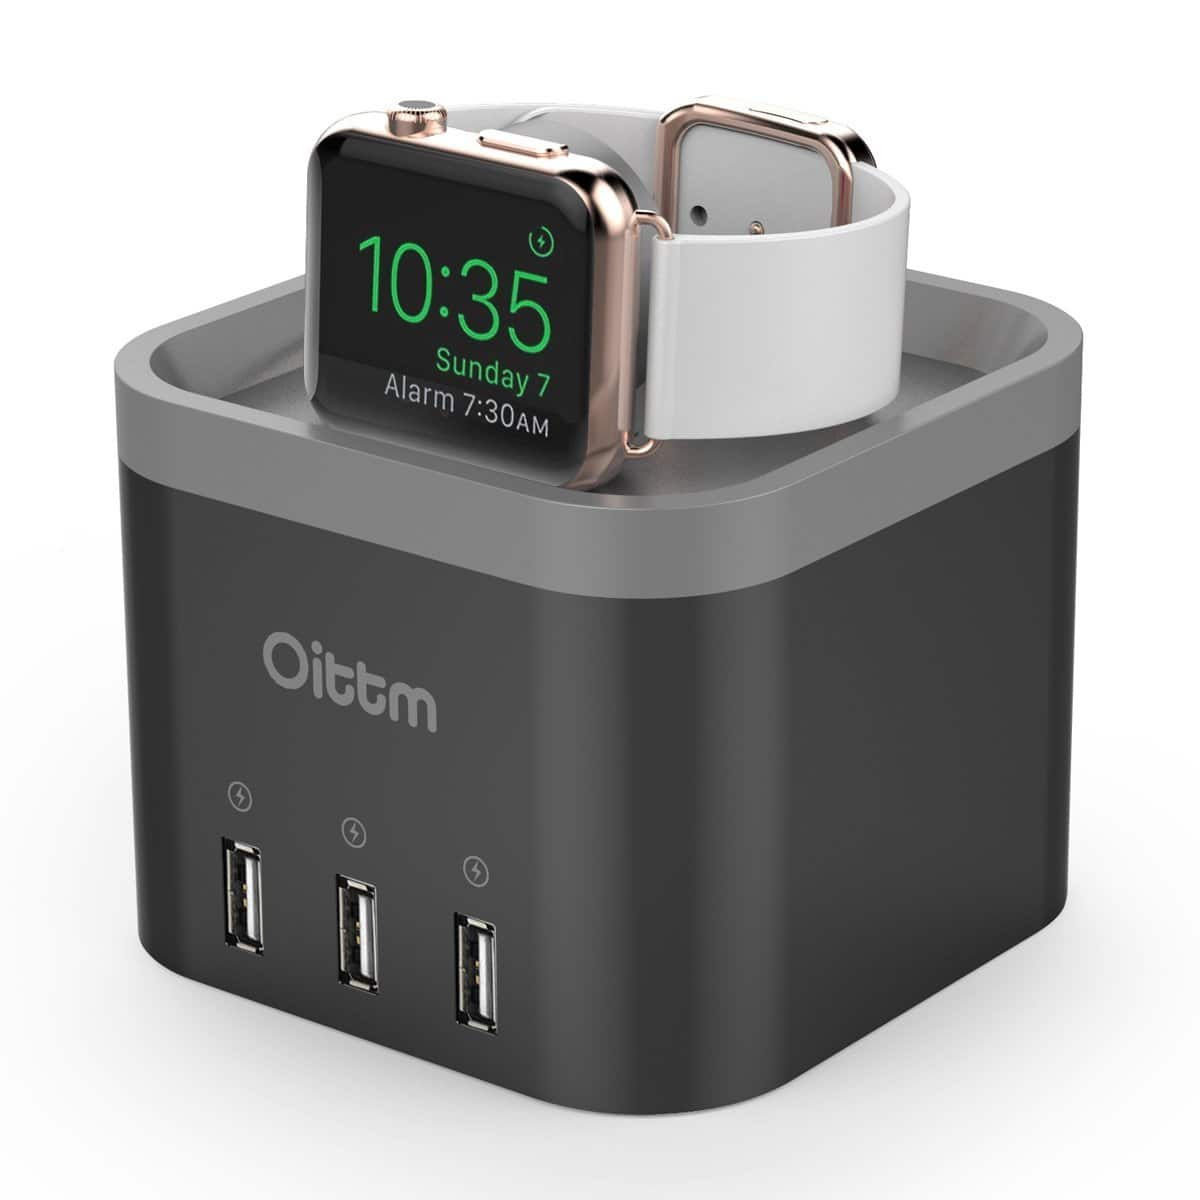 Oittm Apple Watch Desktop Charge Dock w/ 4-Port USB Charging Hub  $13.50